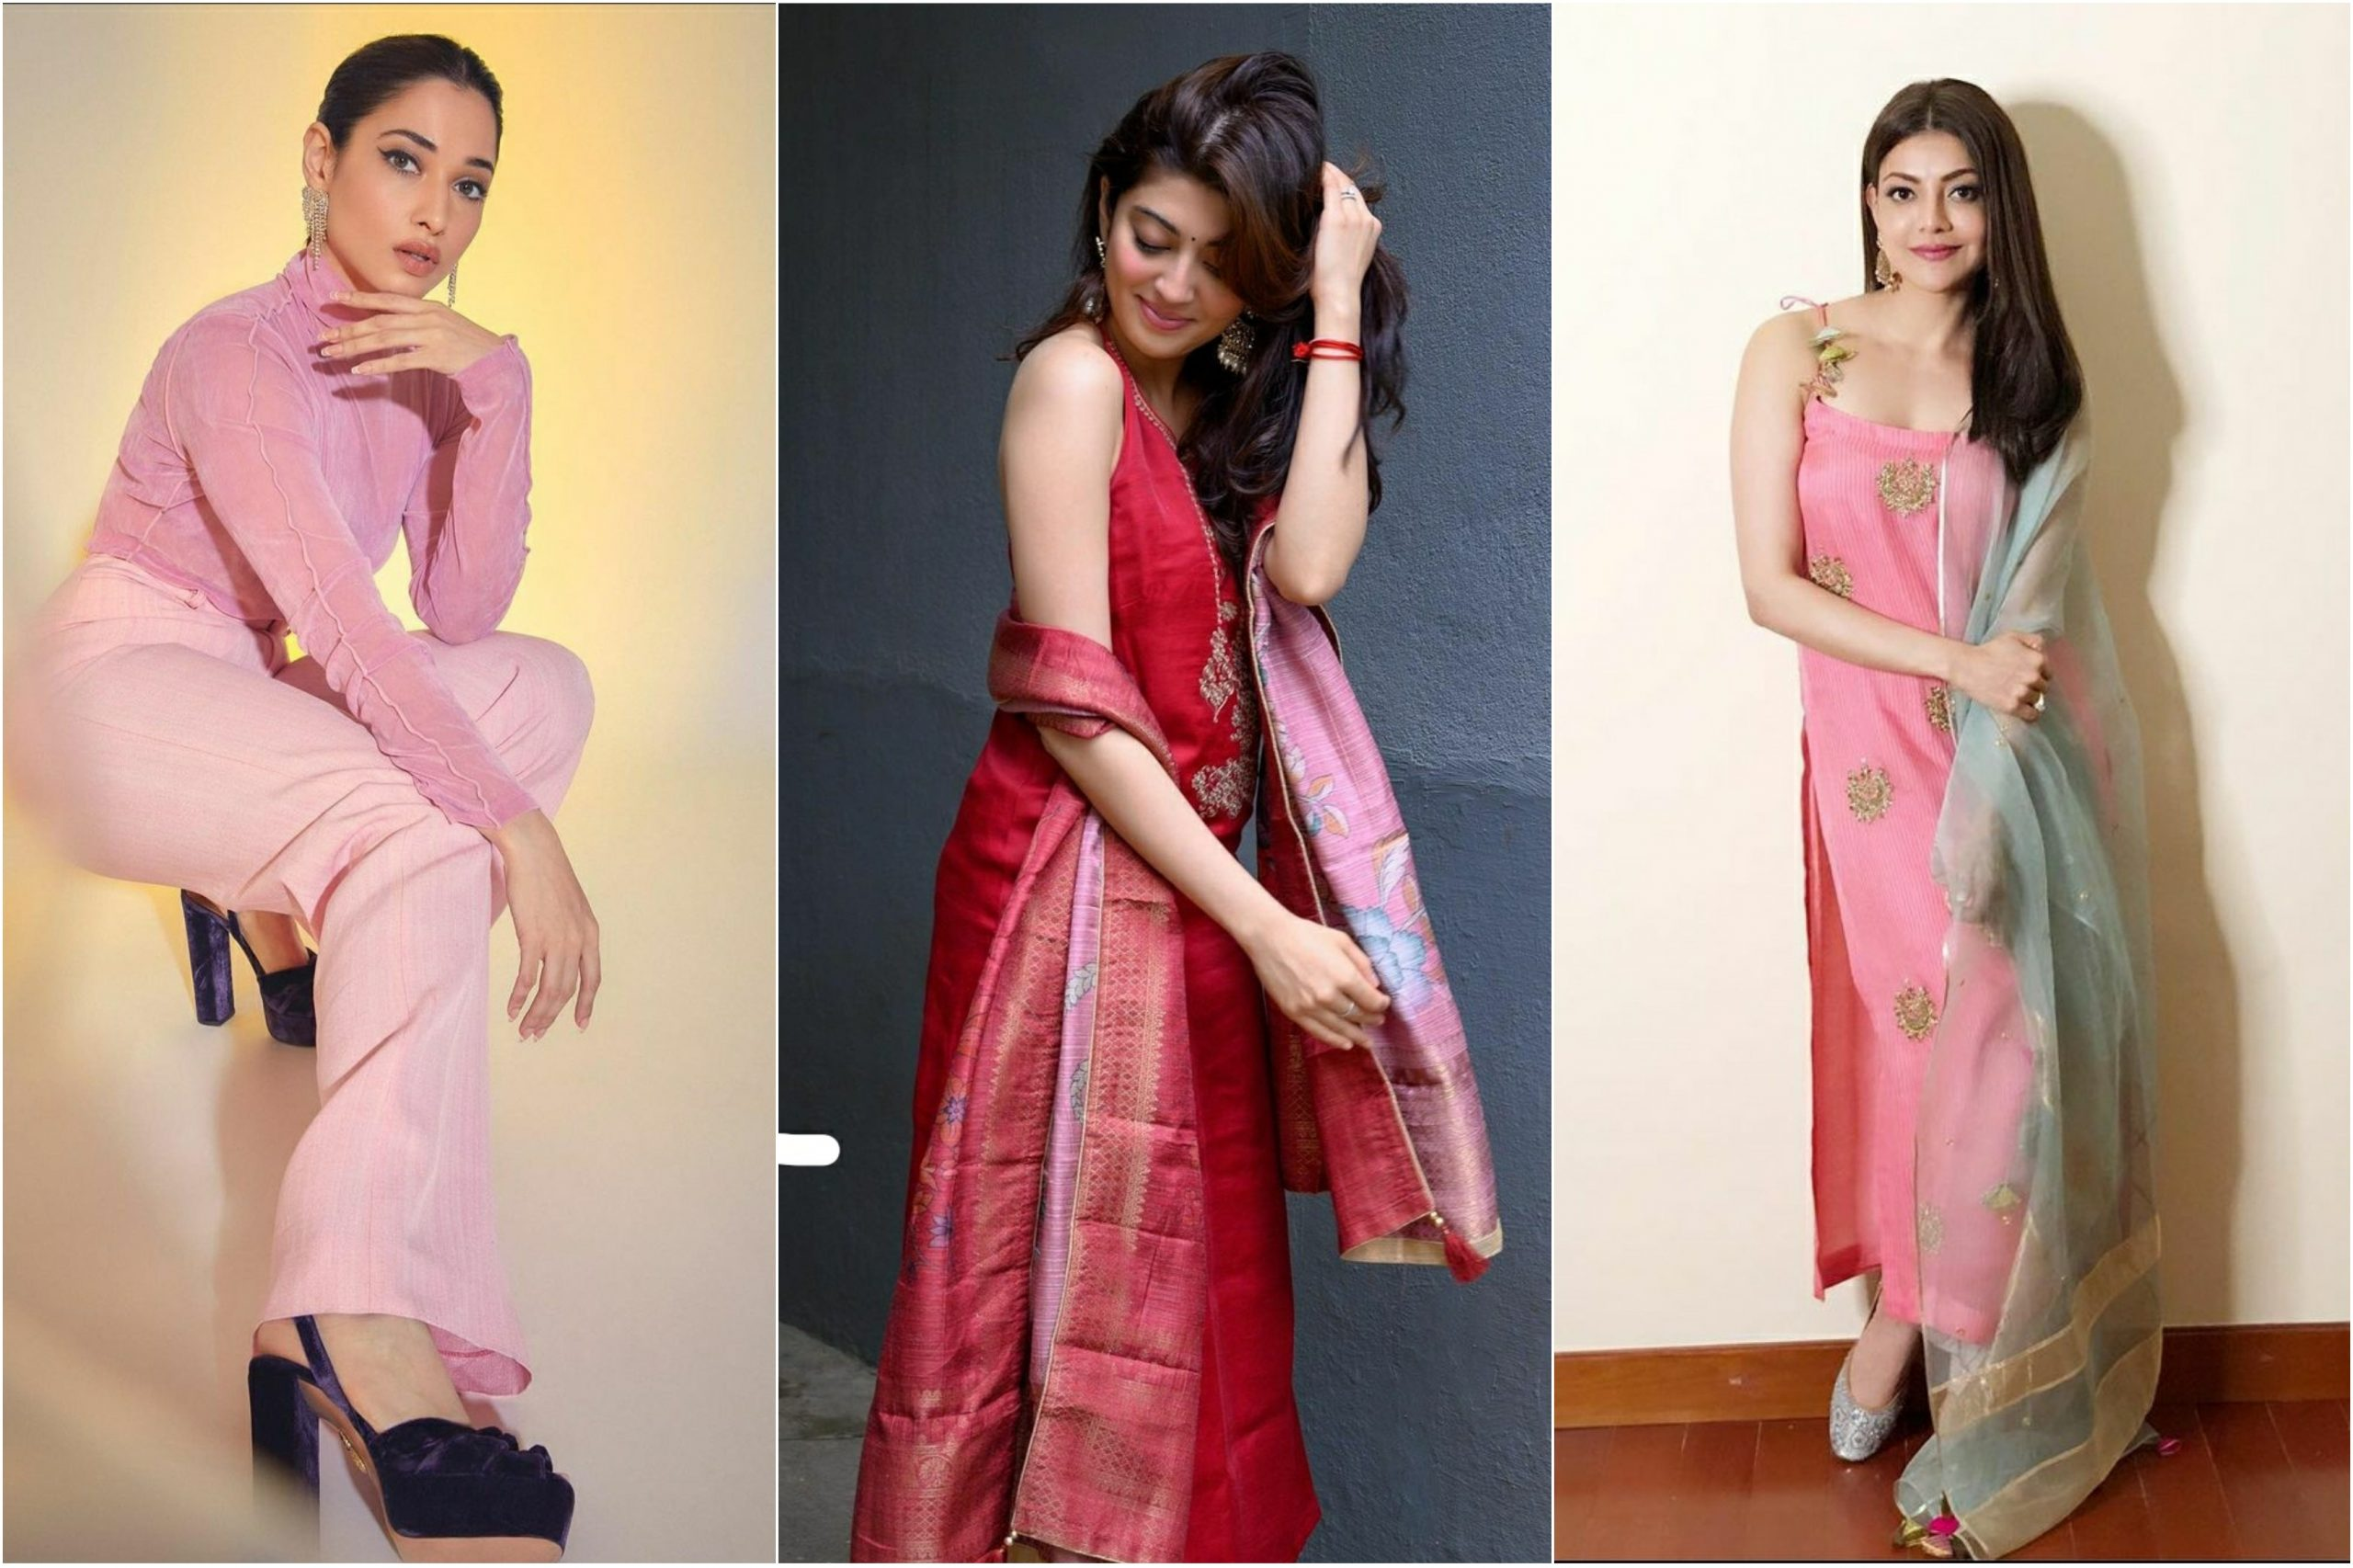 From Kajal Aggarwal to Pranitha Subhash, these Tollywood divas slay the Palazzo look